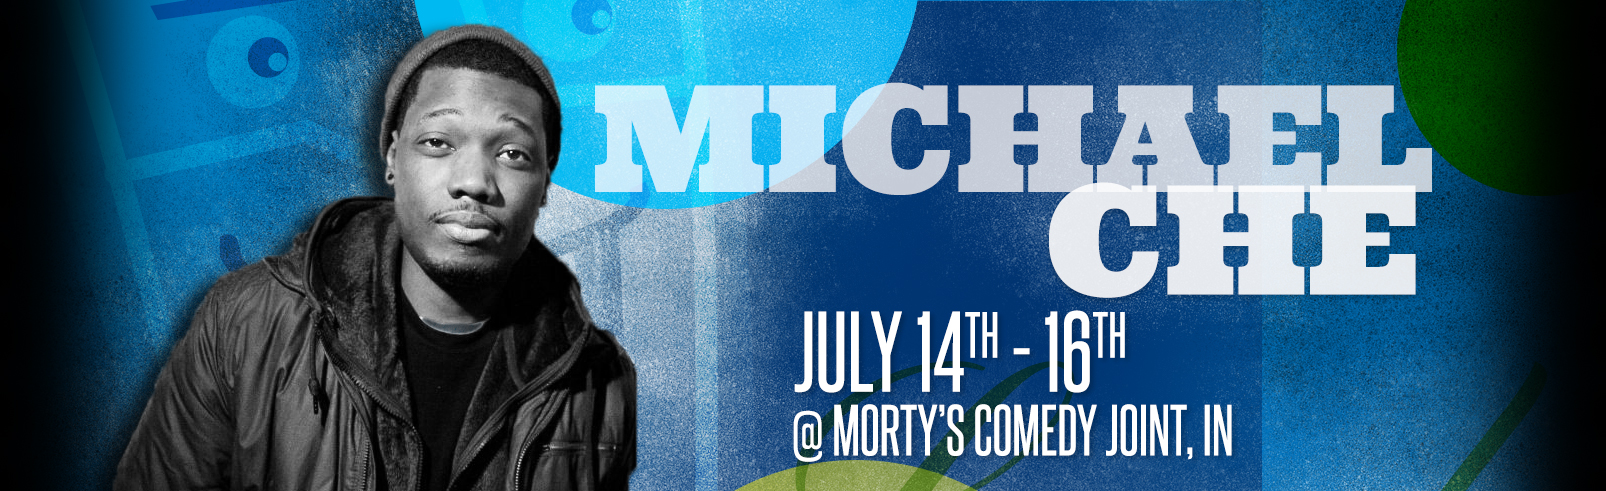 Michael Che @ Morty's Comedy Joint